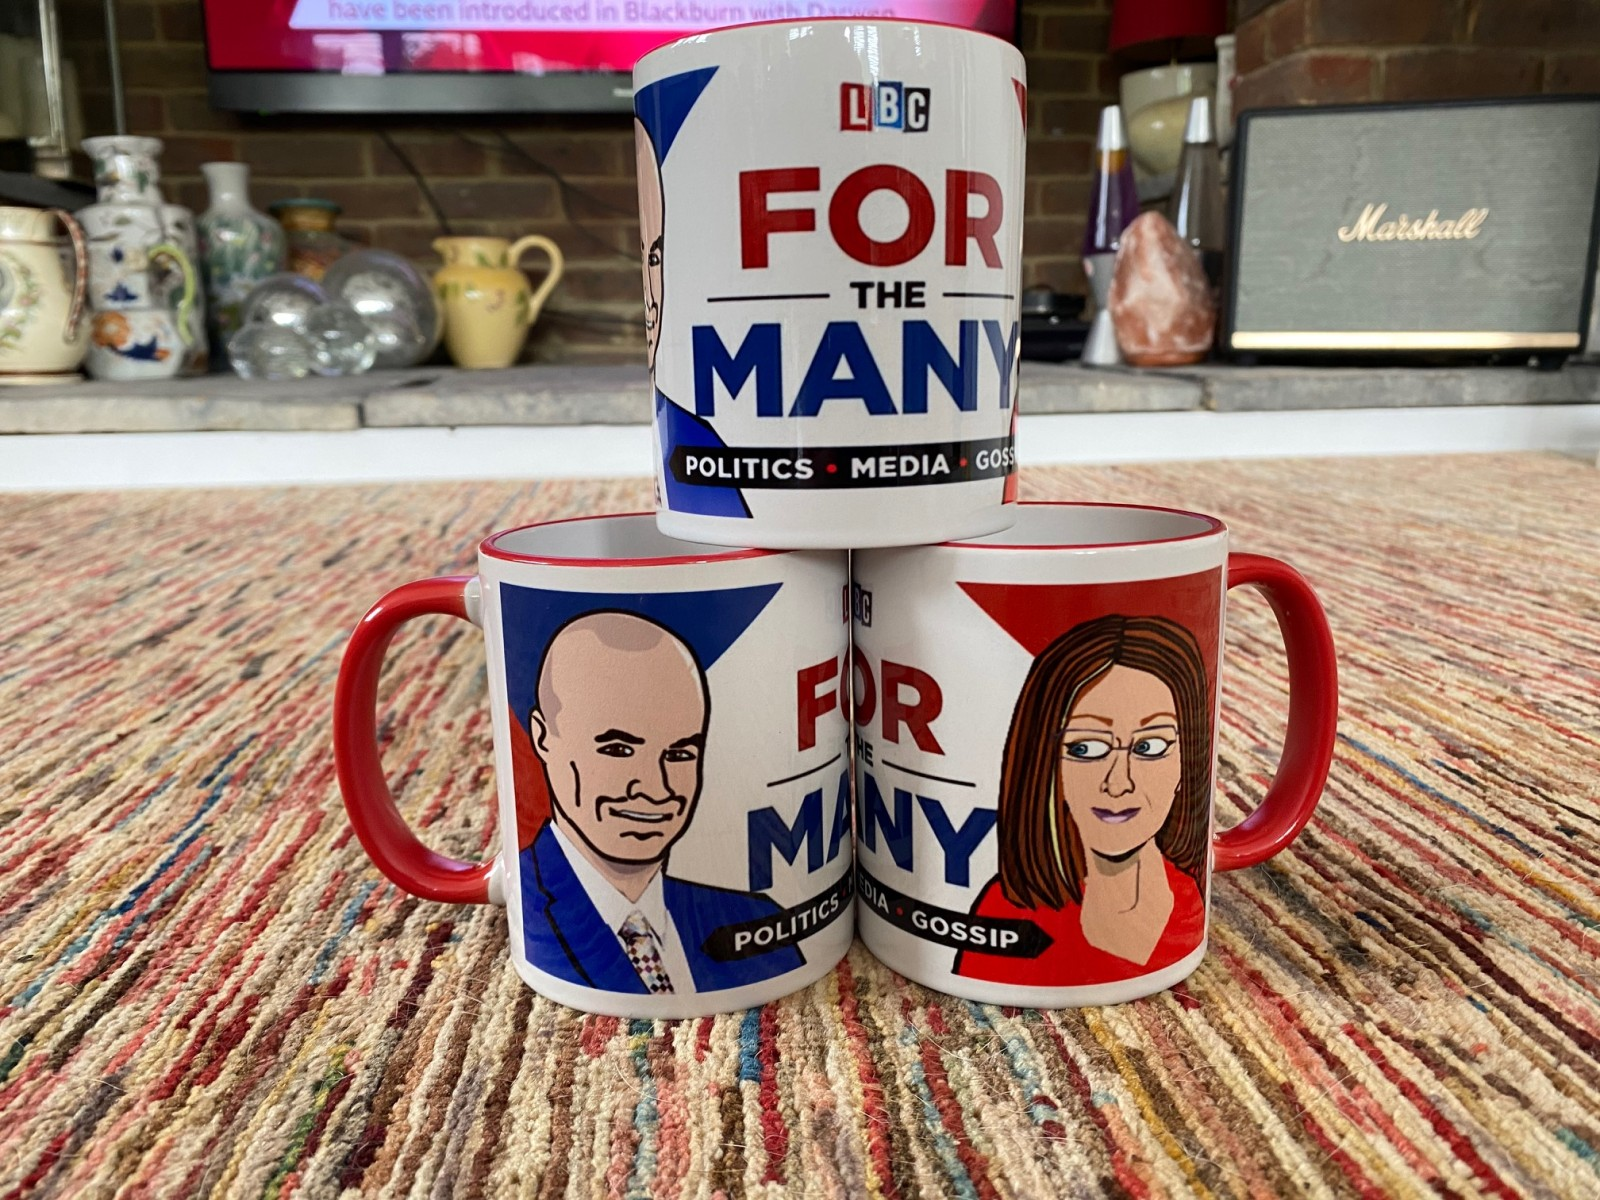 Jacqui Smith Red Trim For The Many Cartoon Mug By Ukpolitoons Red Handle Rim Iain Dale Limited